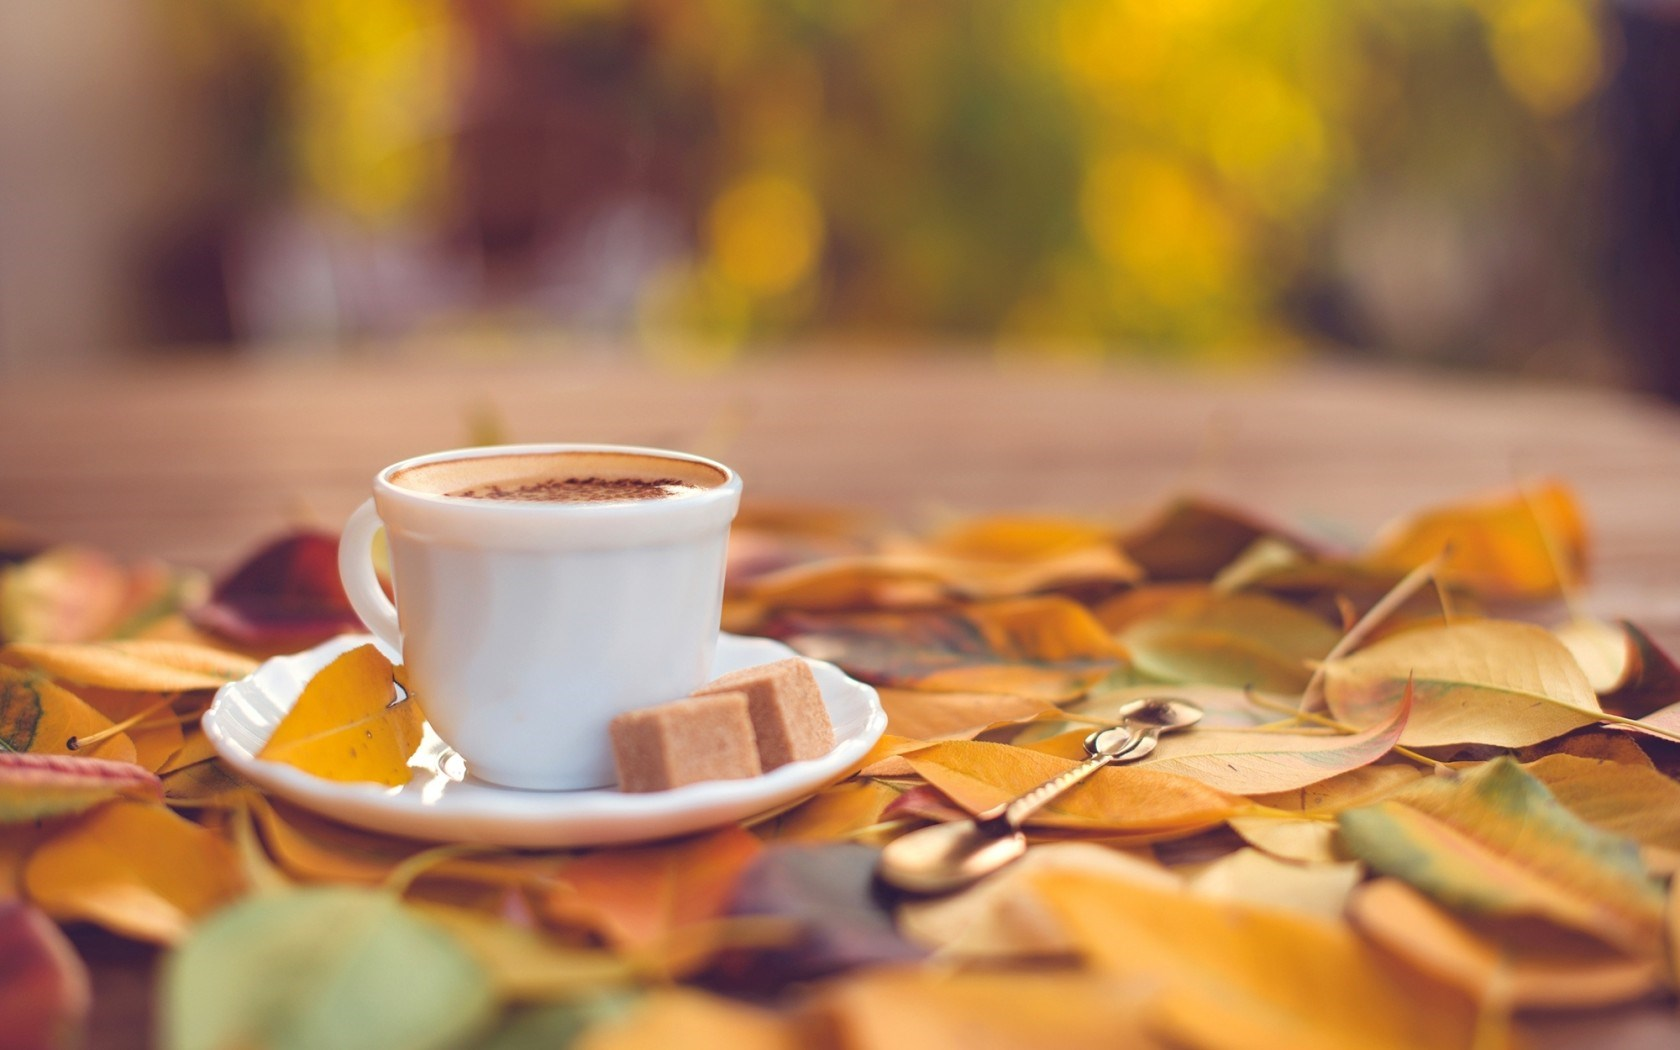 20 Lovely Hd Coffee Wallpapers Hdwallsource Com